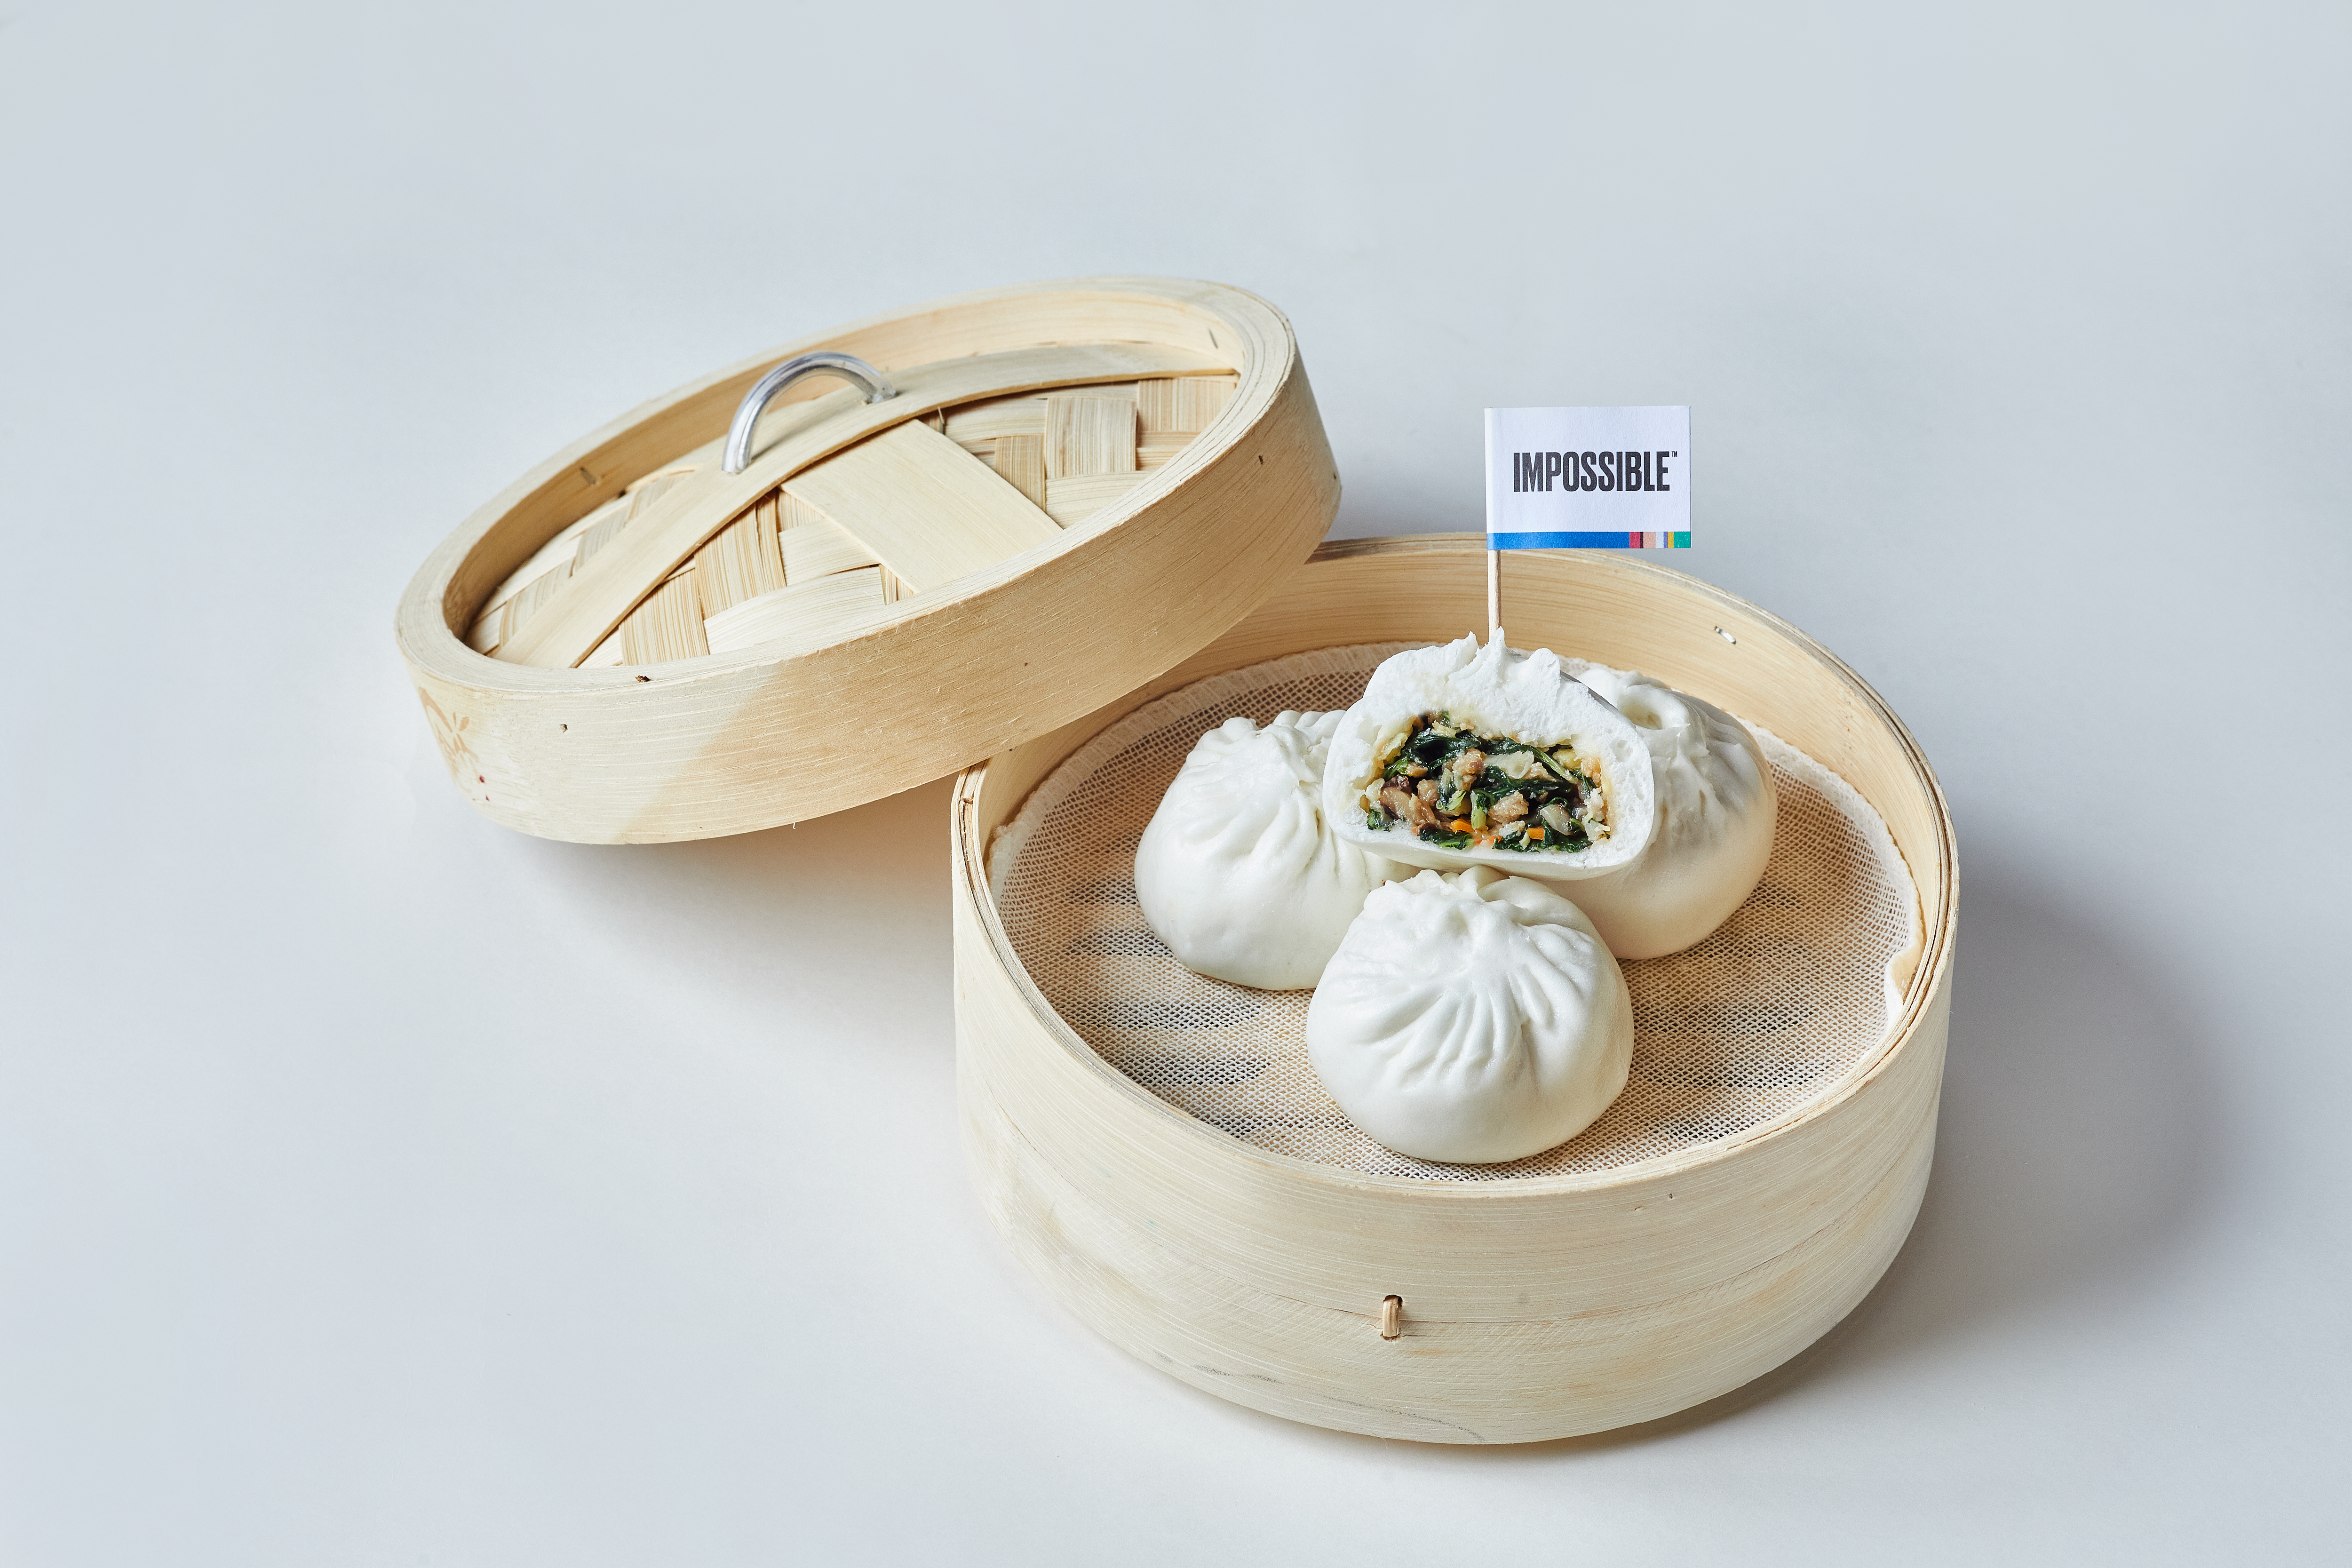 steamed-vegetable-bun-with-impossible-pork-and-mushroom